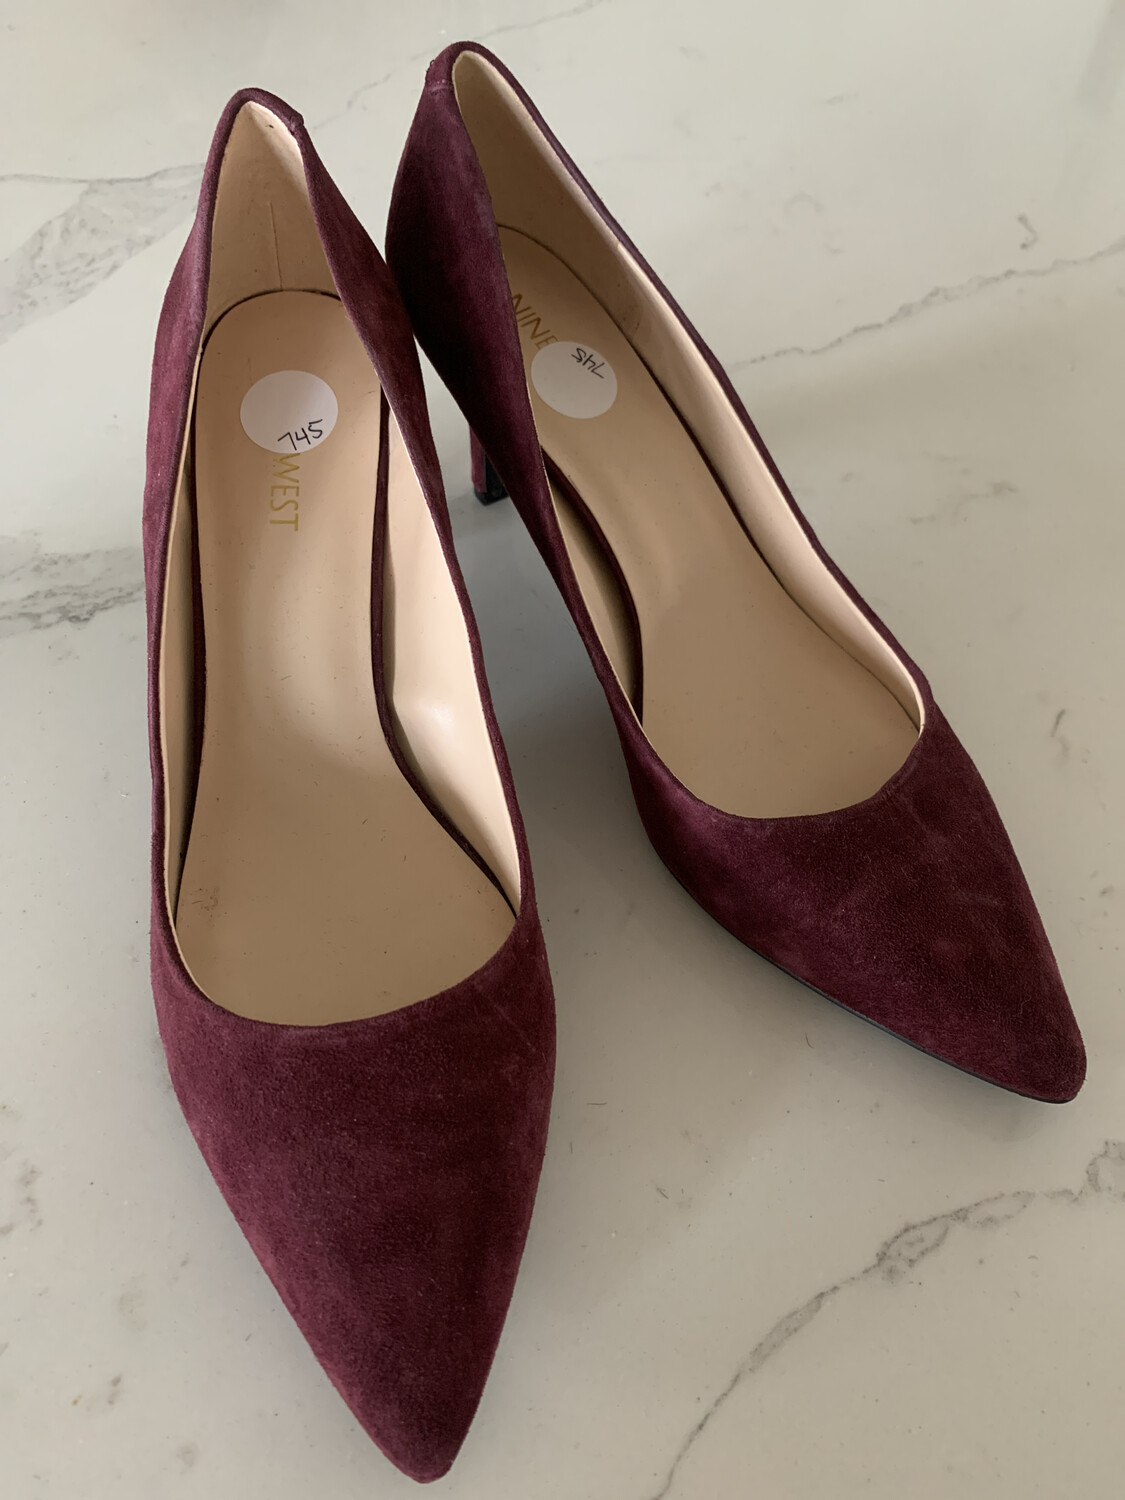 Nine West Wine Suede Heels - Size 10